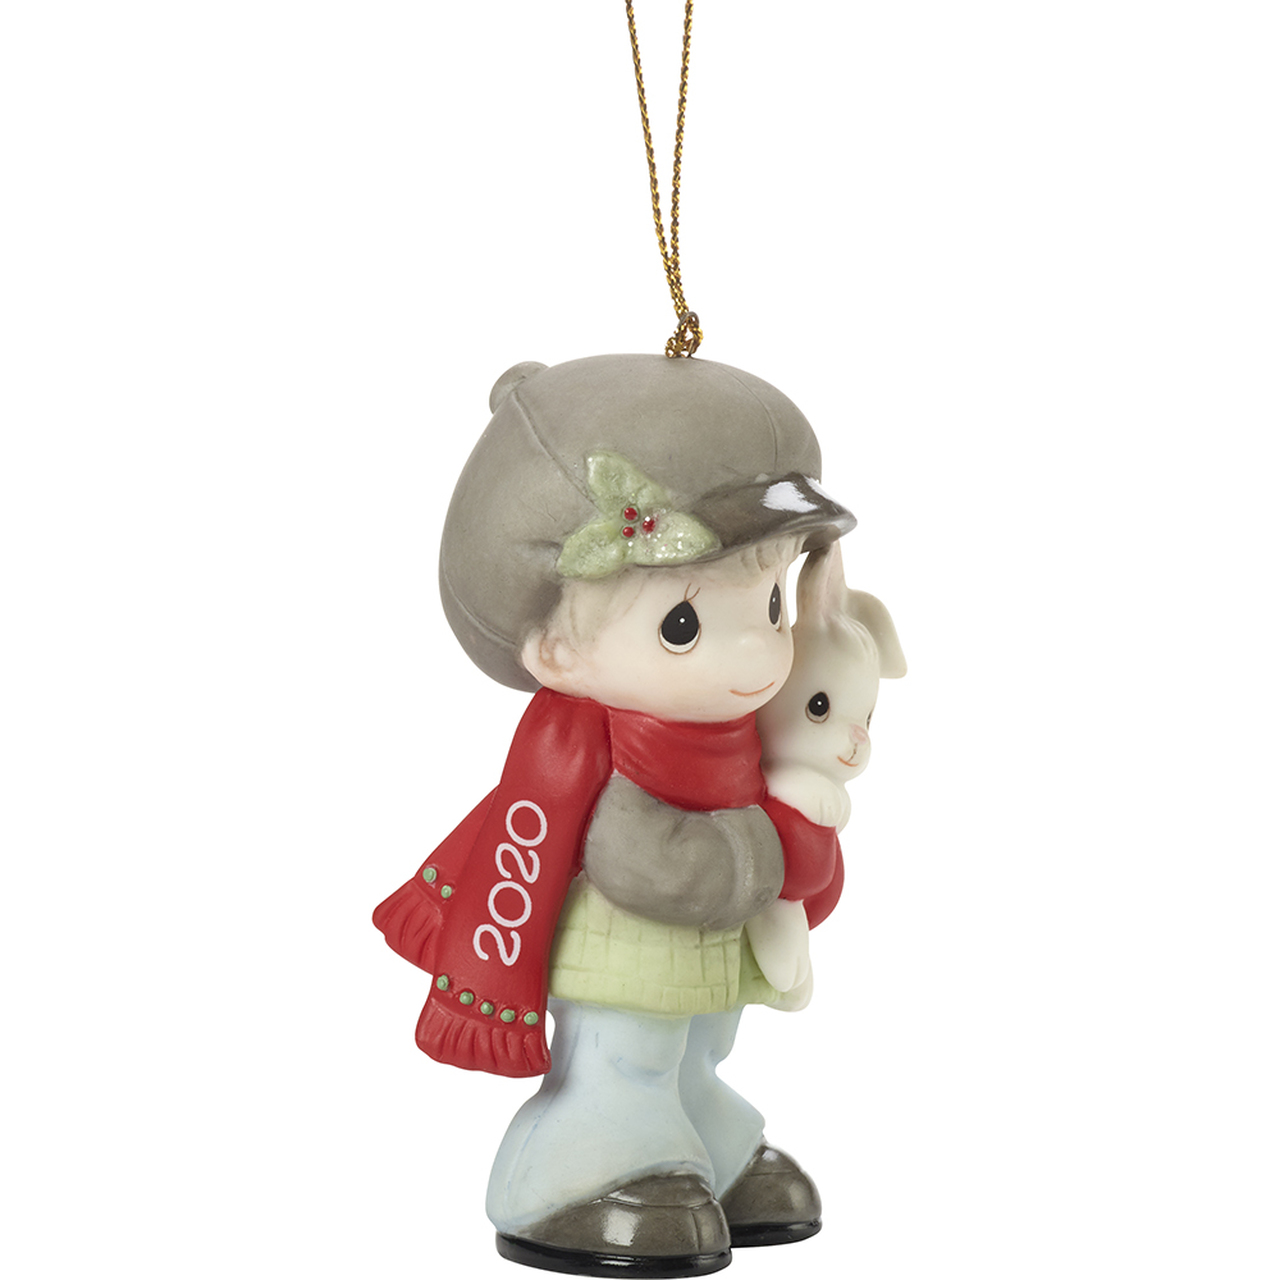 Every Bunny Loves A Hug - Precious Moment 2020 dated Boy ornament